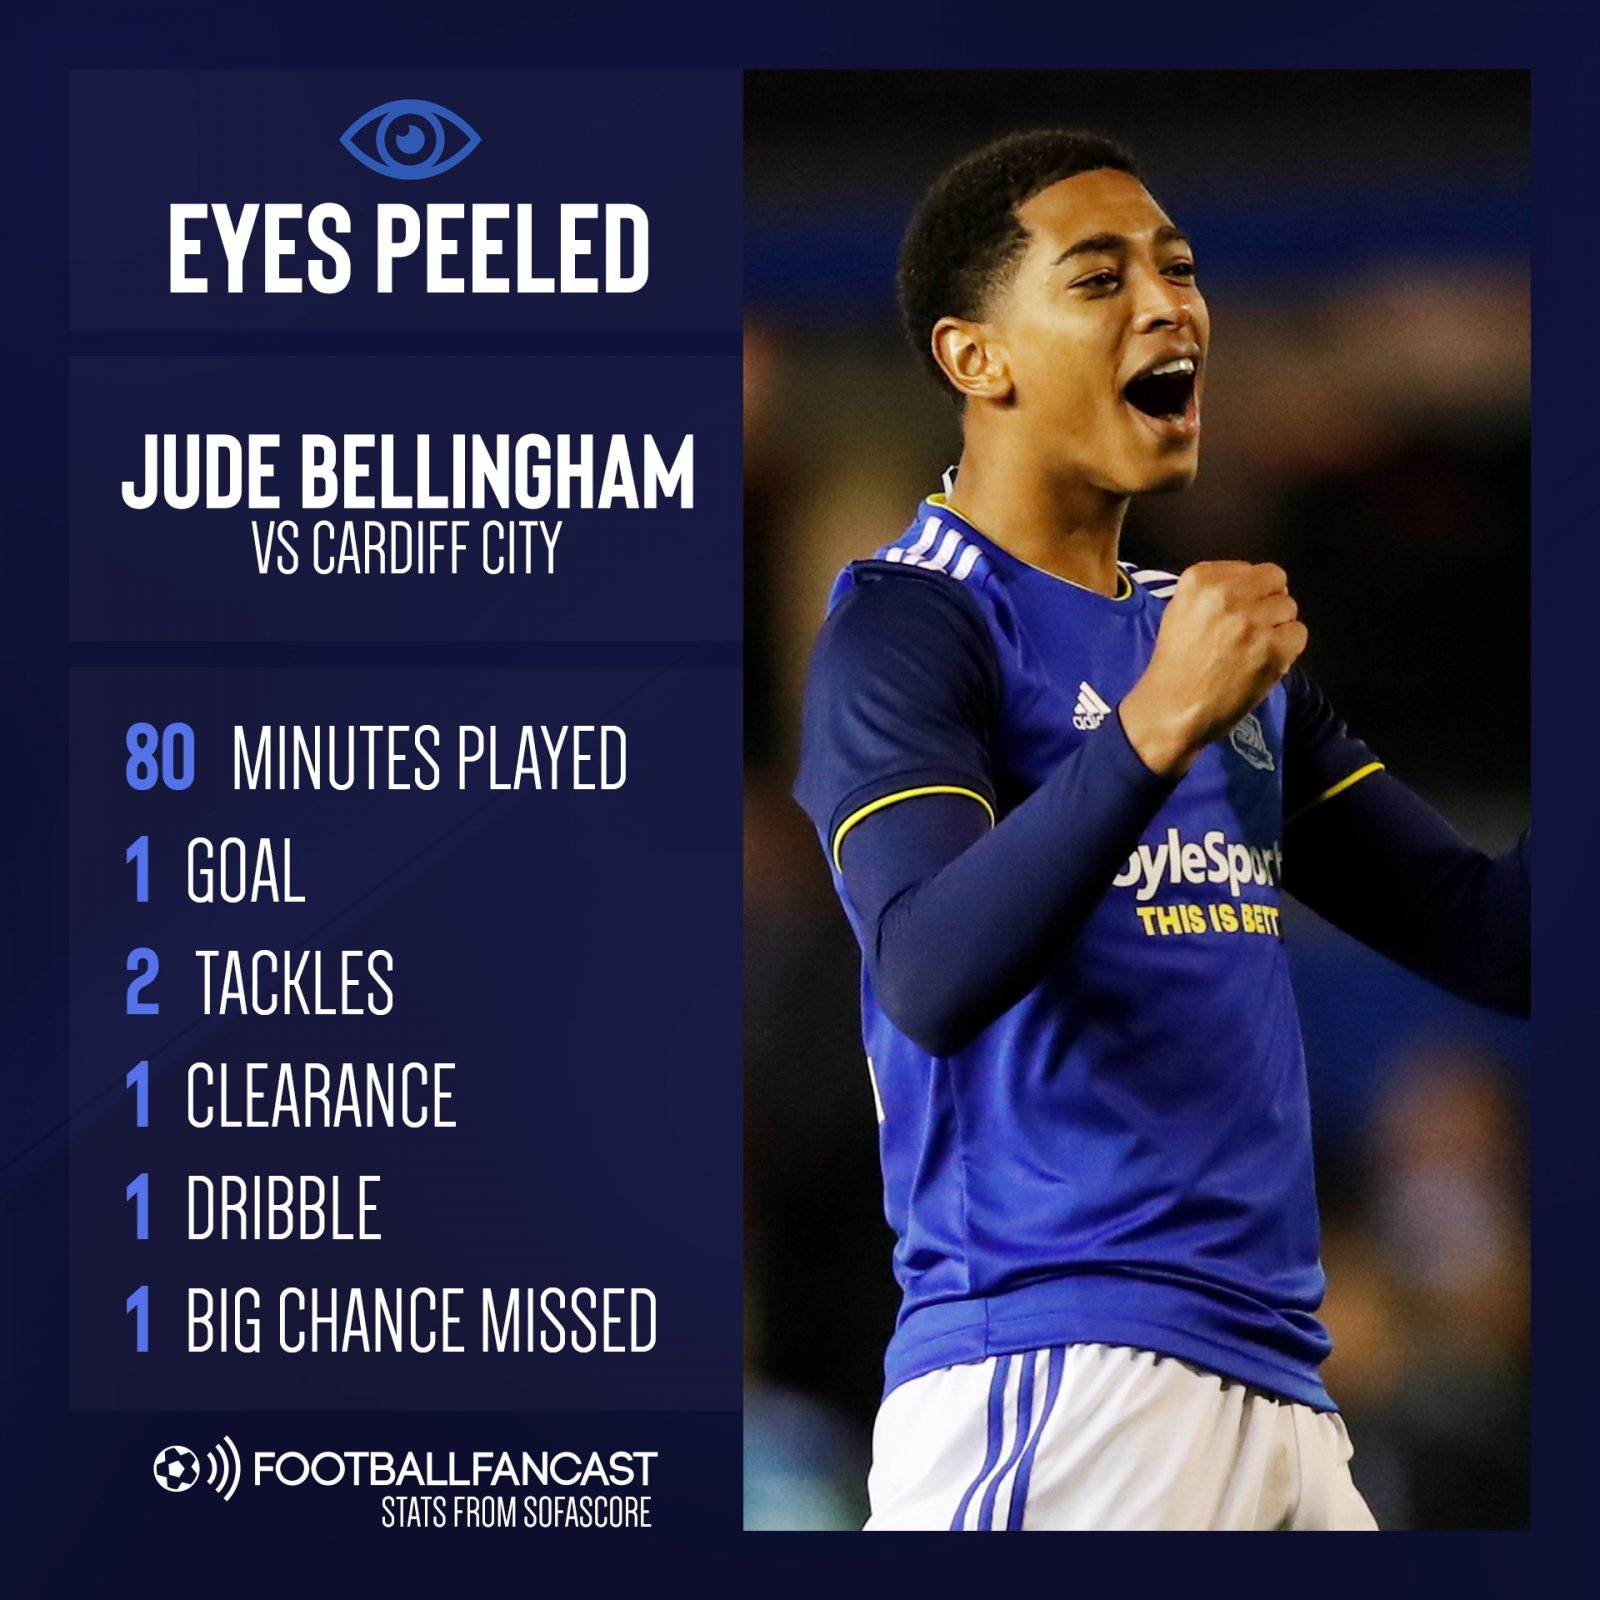 Eyes Peeled PIN on Jude Bellingham vs Cardiff City - Latest display proves Wolves need to change their stance on impressive teenage talent - opinion